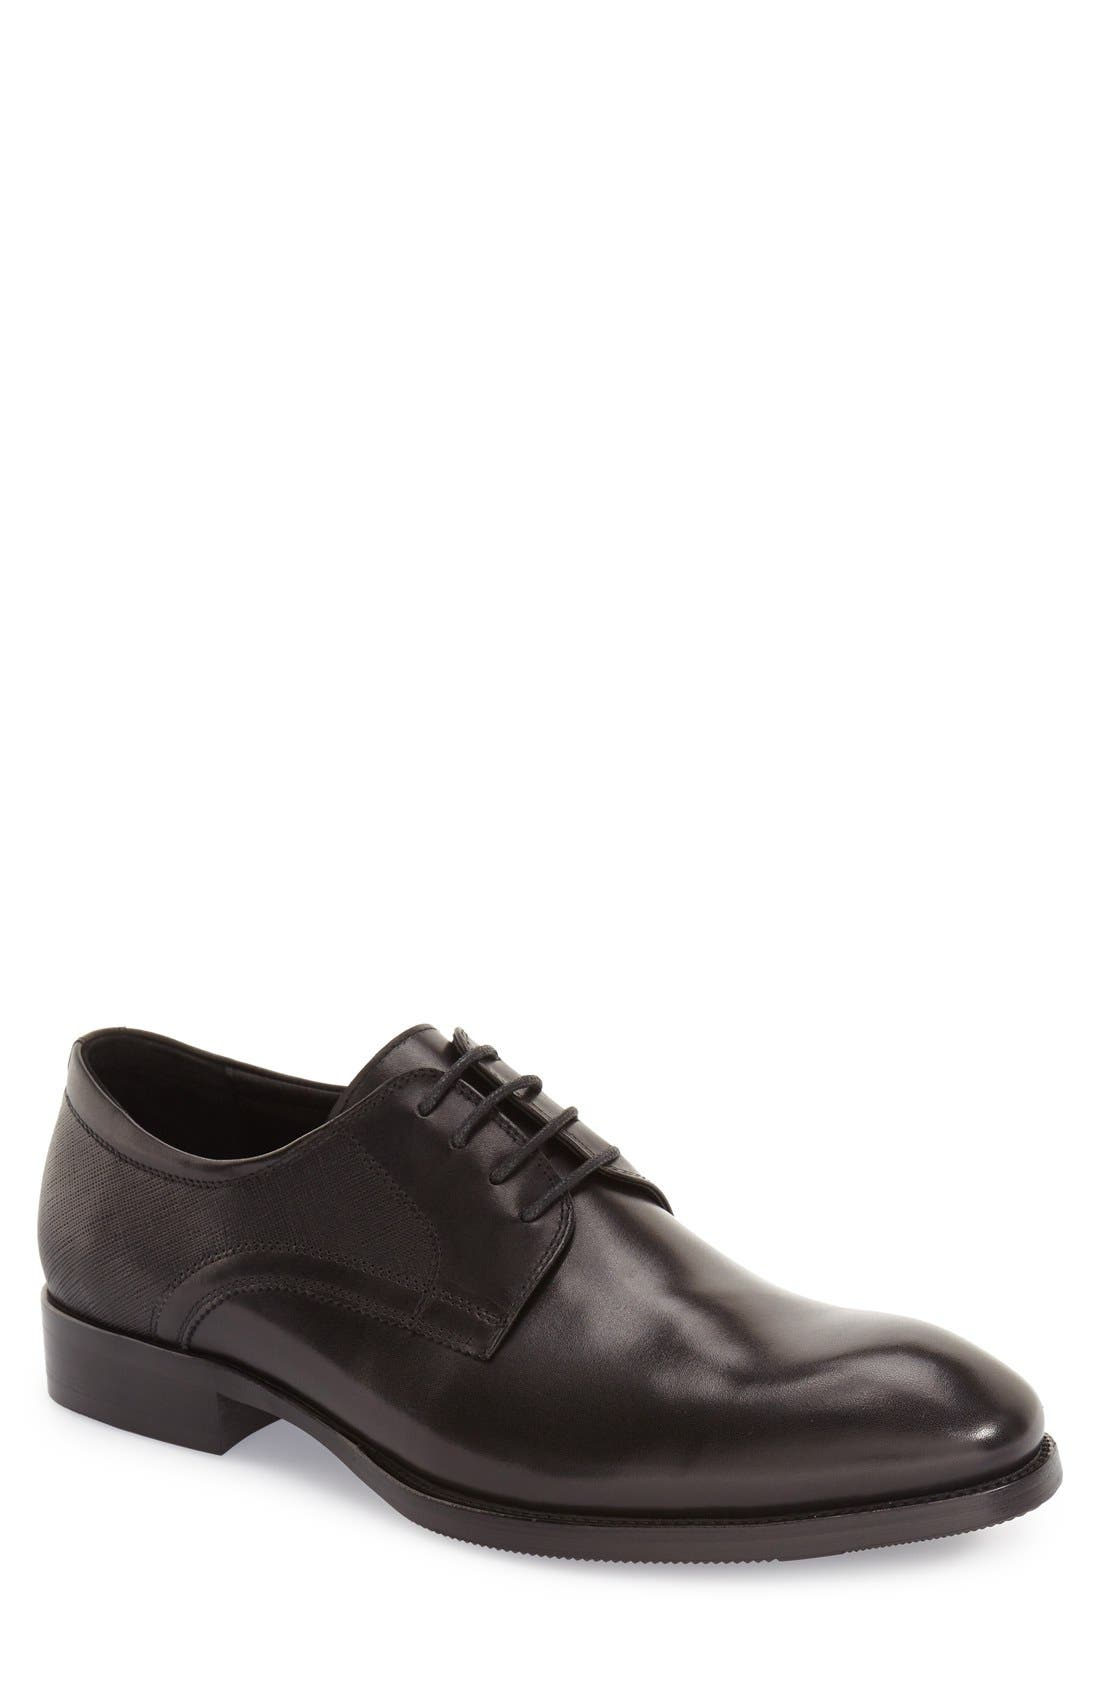 Main Image - Zanzara 'Bruckner' Plain Toe Derby (Men)